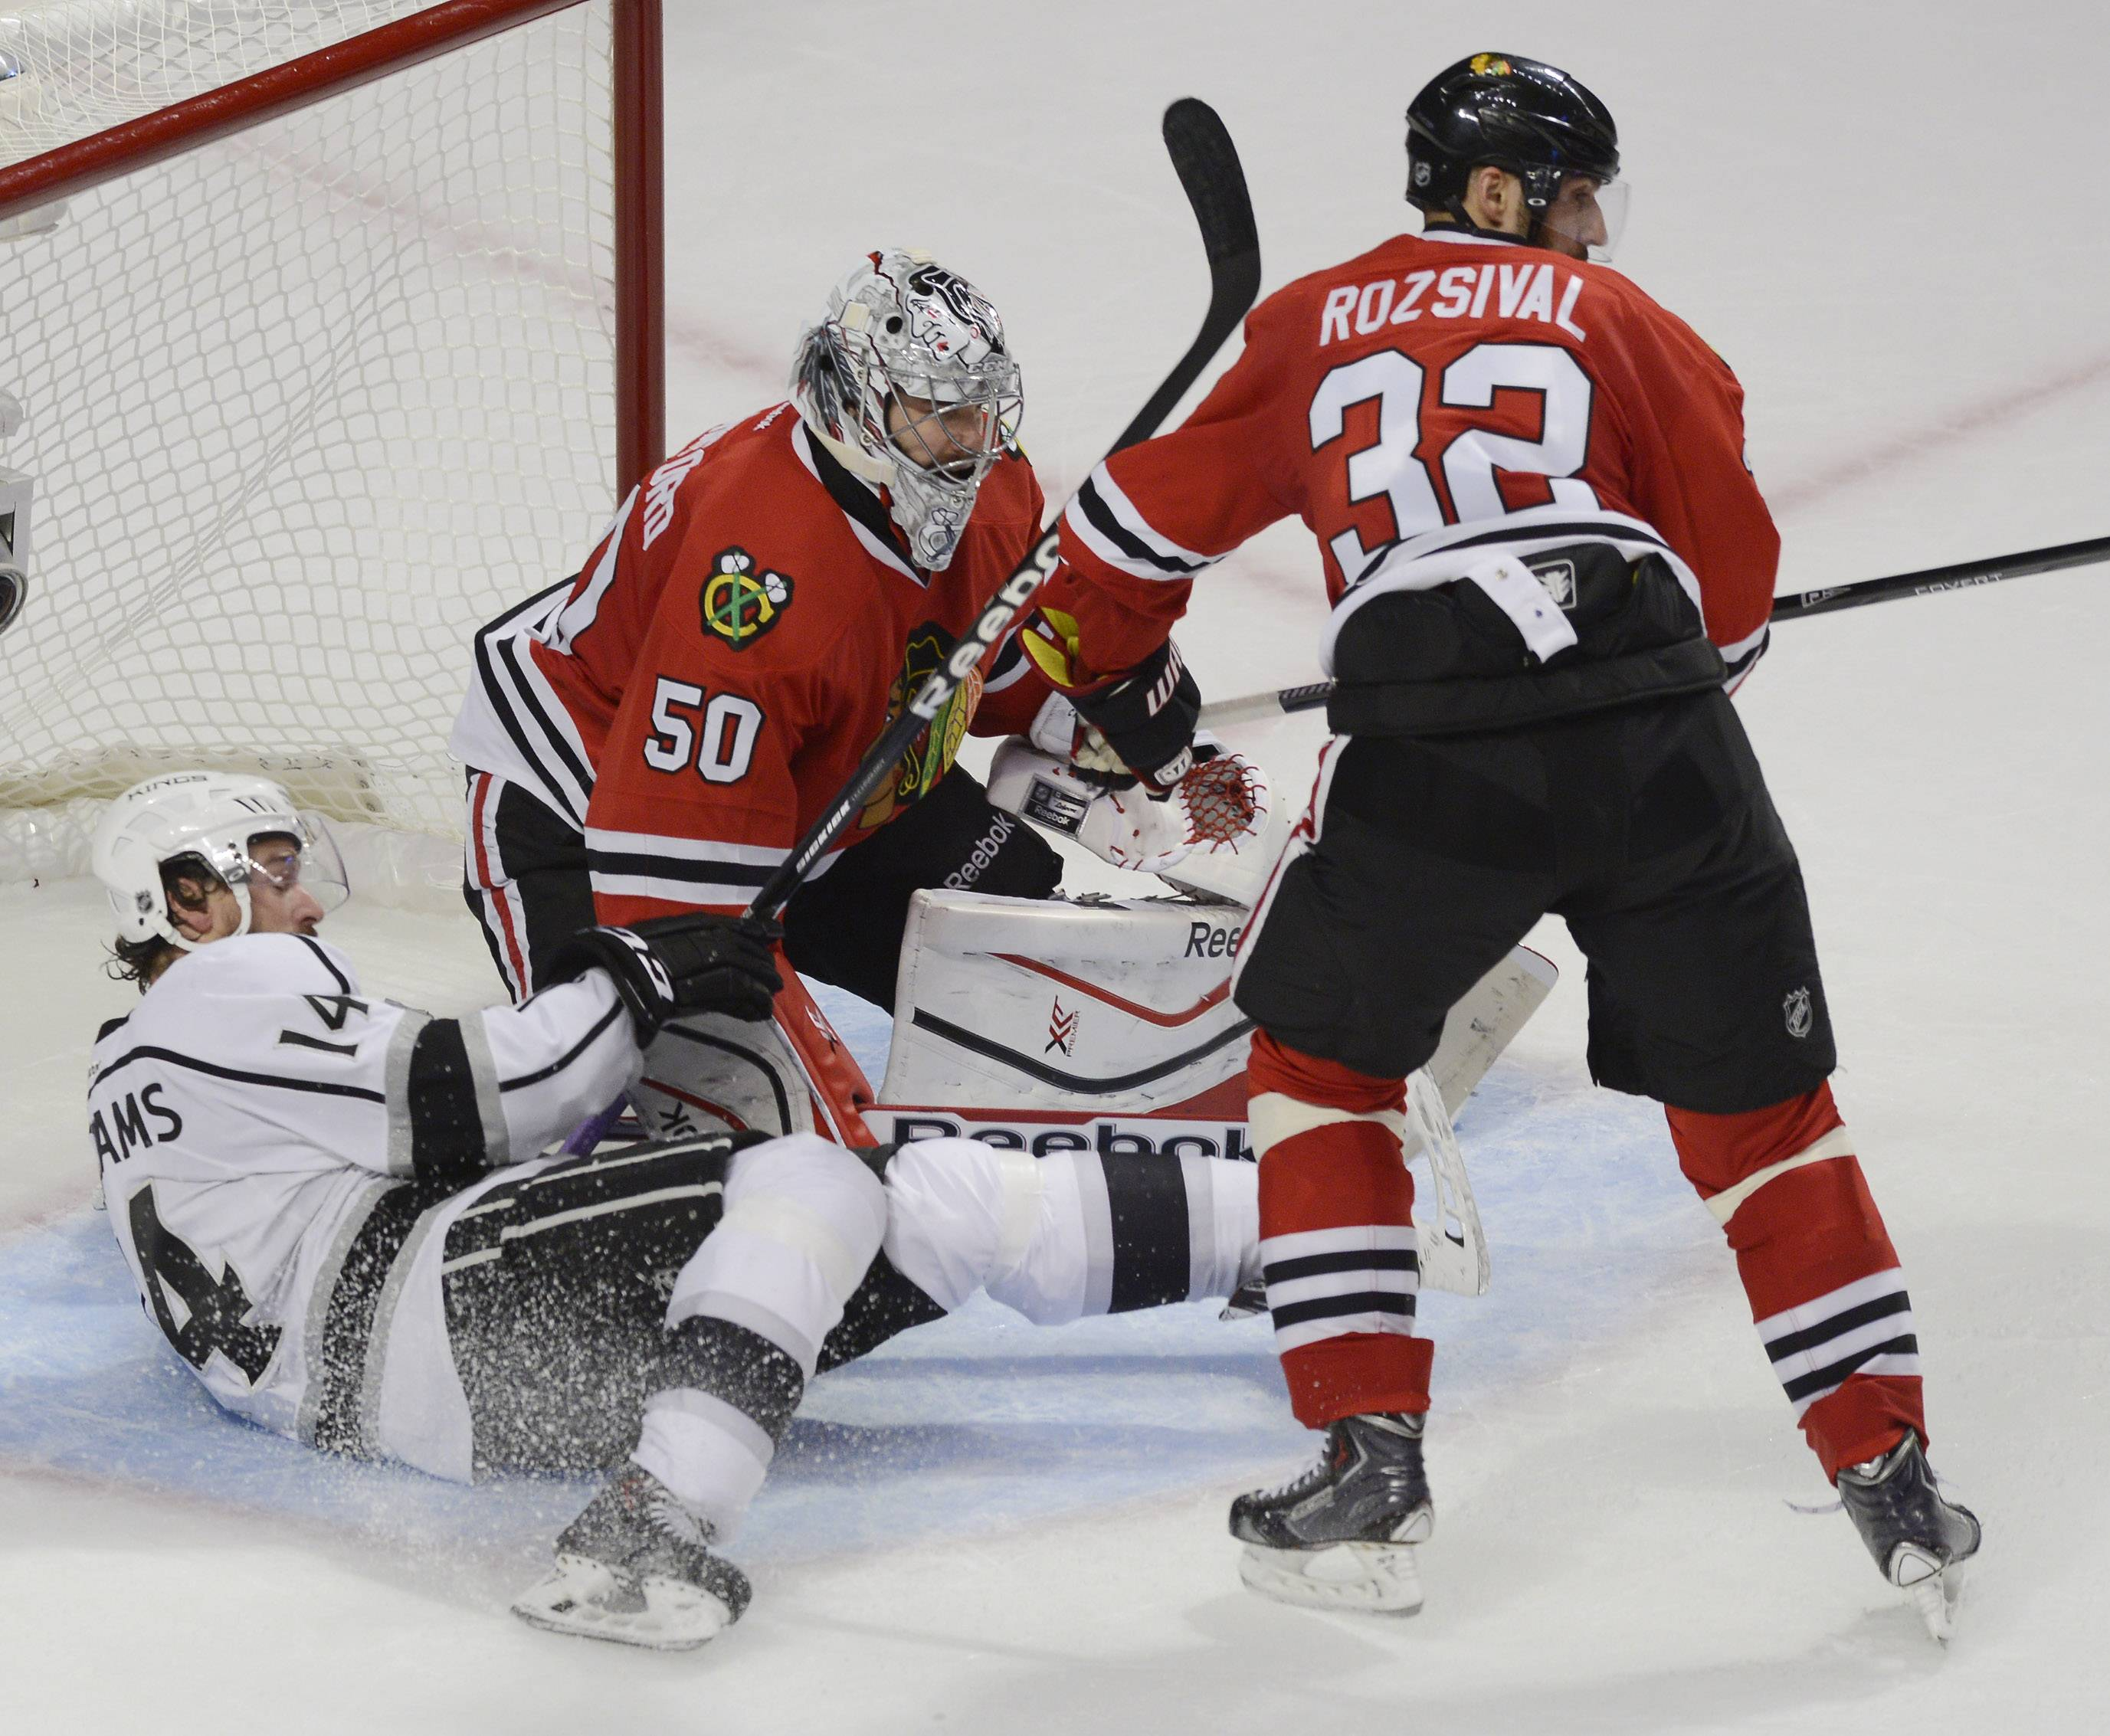 Los Angeles Kings right wing Justin Williams, left, falls as Chicago Blackhawks goalie Corey Crawford and defenseman Michal Rozsival protect the net during Sunday's game at the United Center in Chicago.